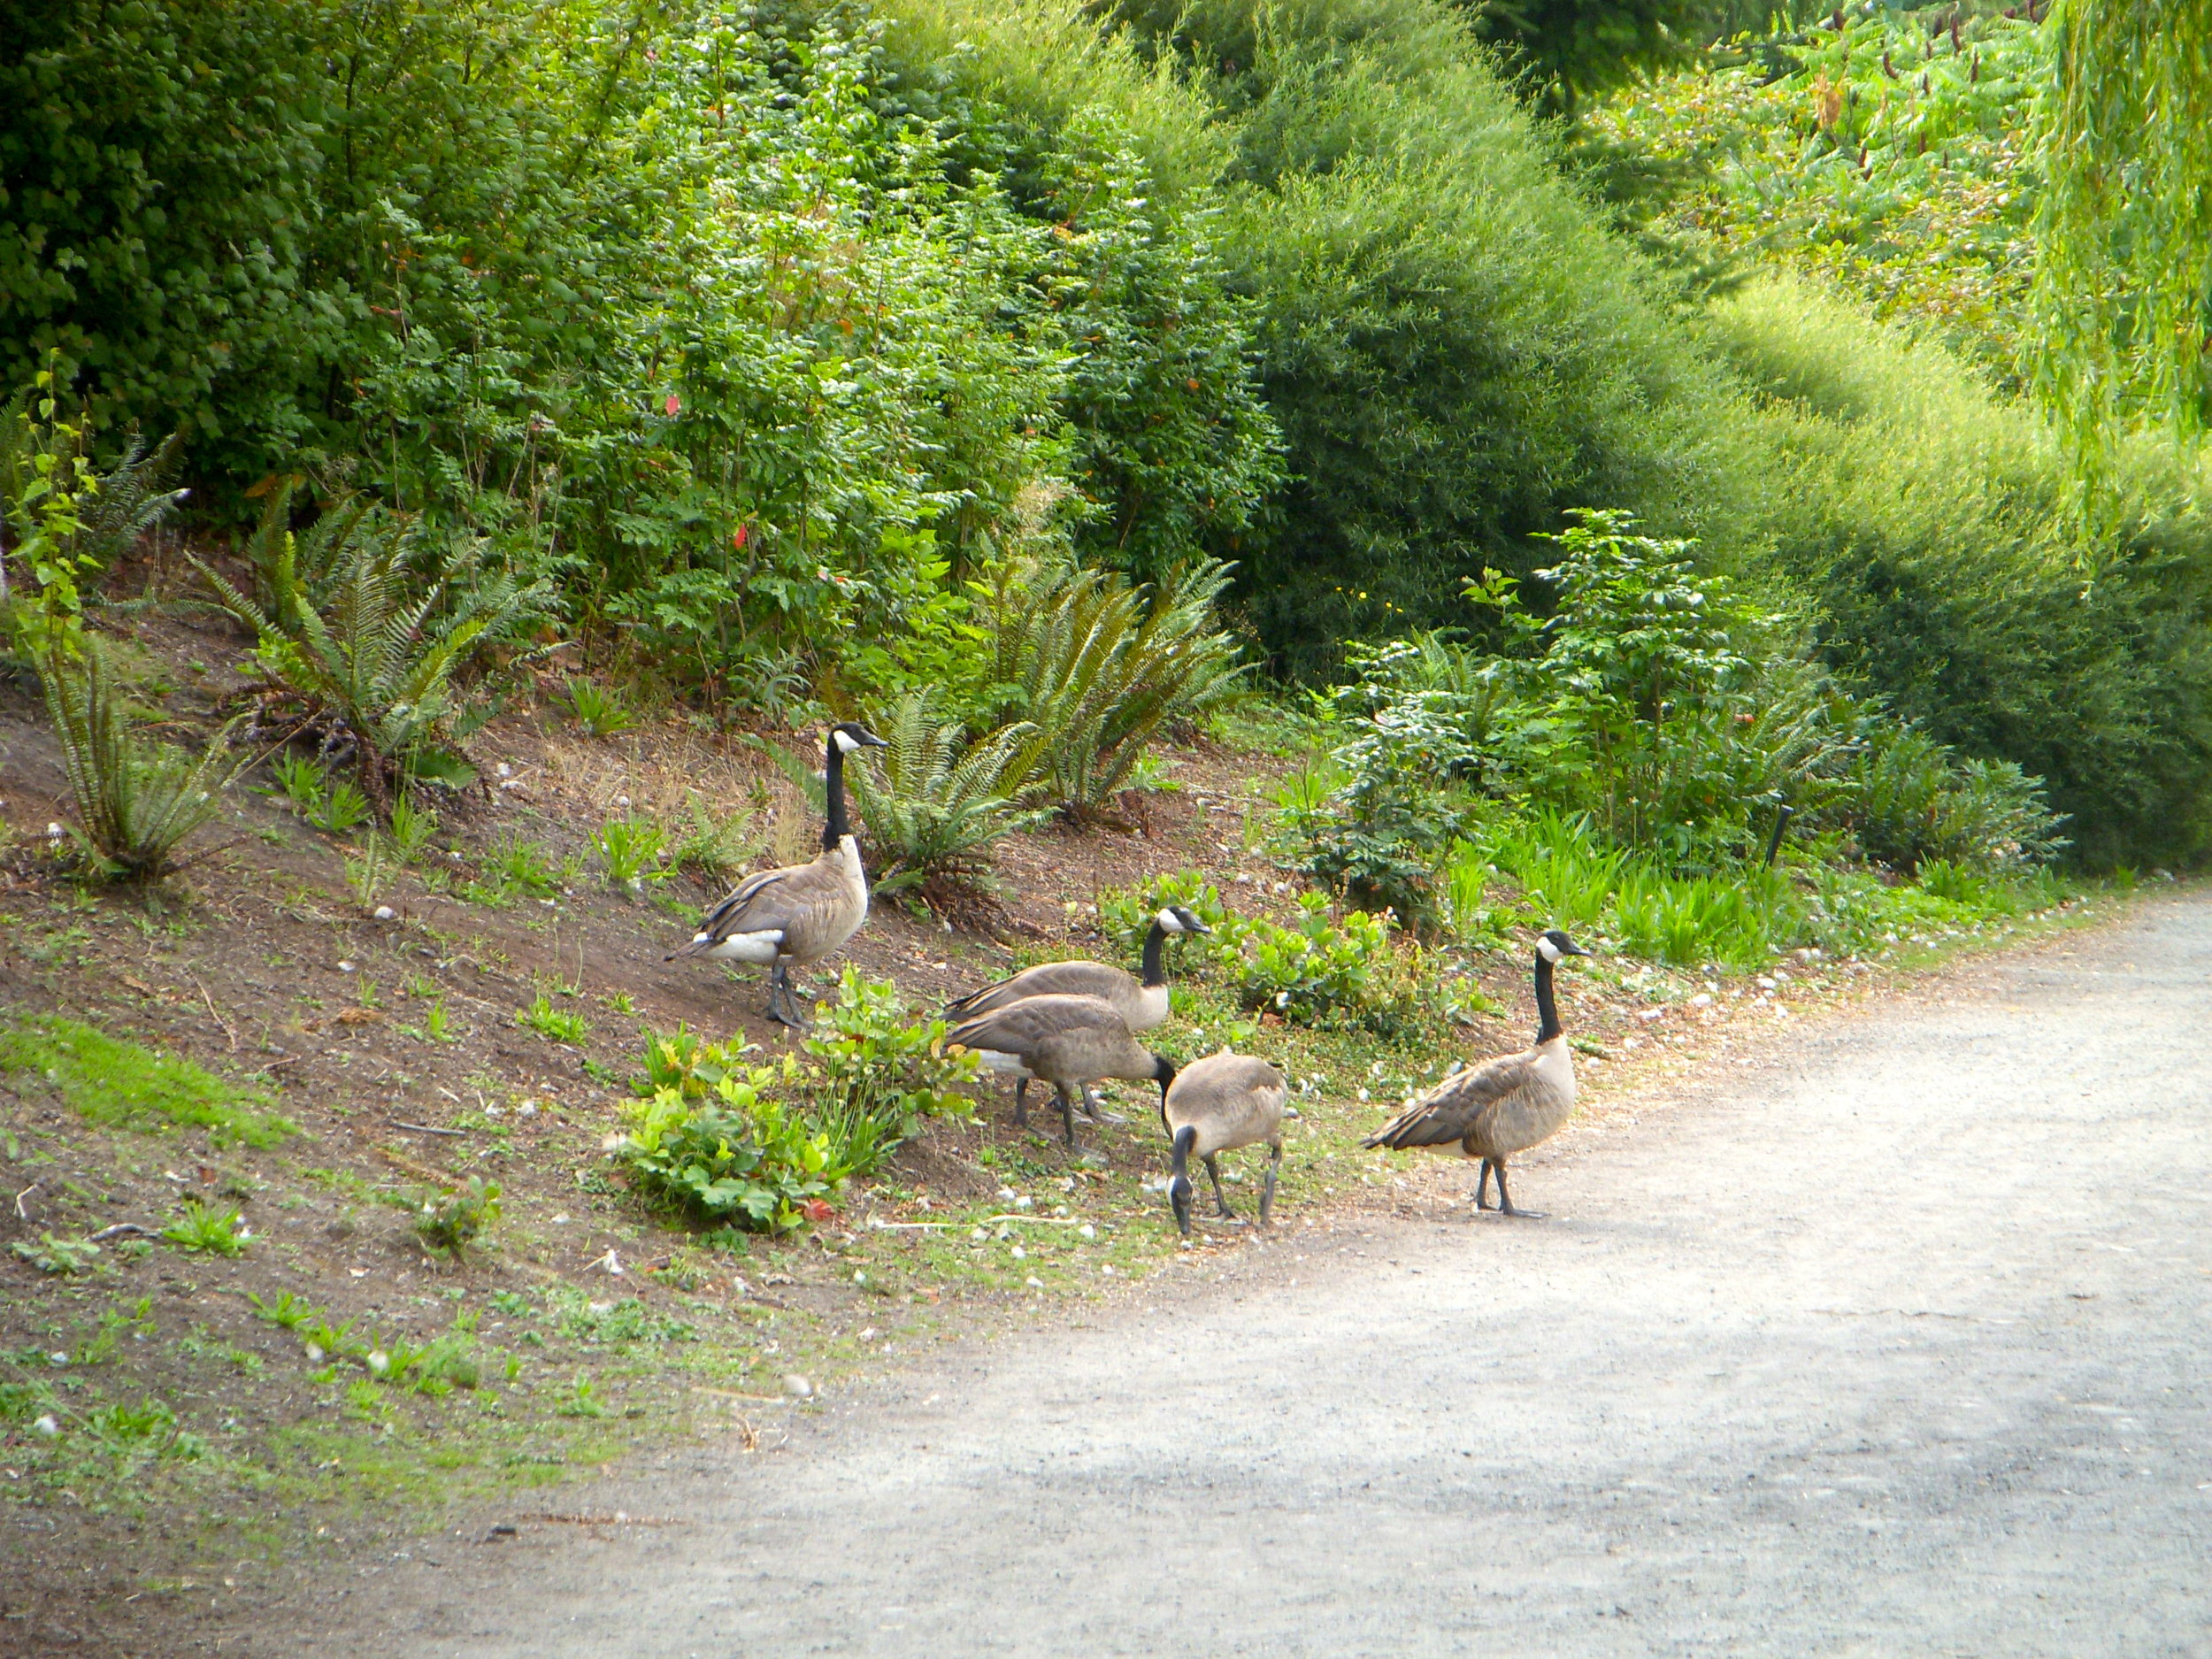 Actual Canadian geese.